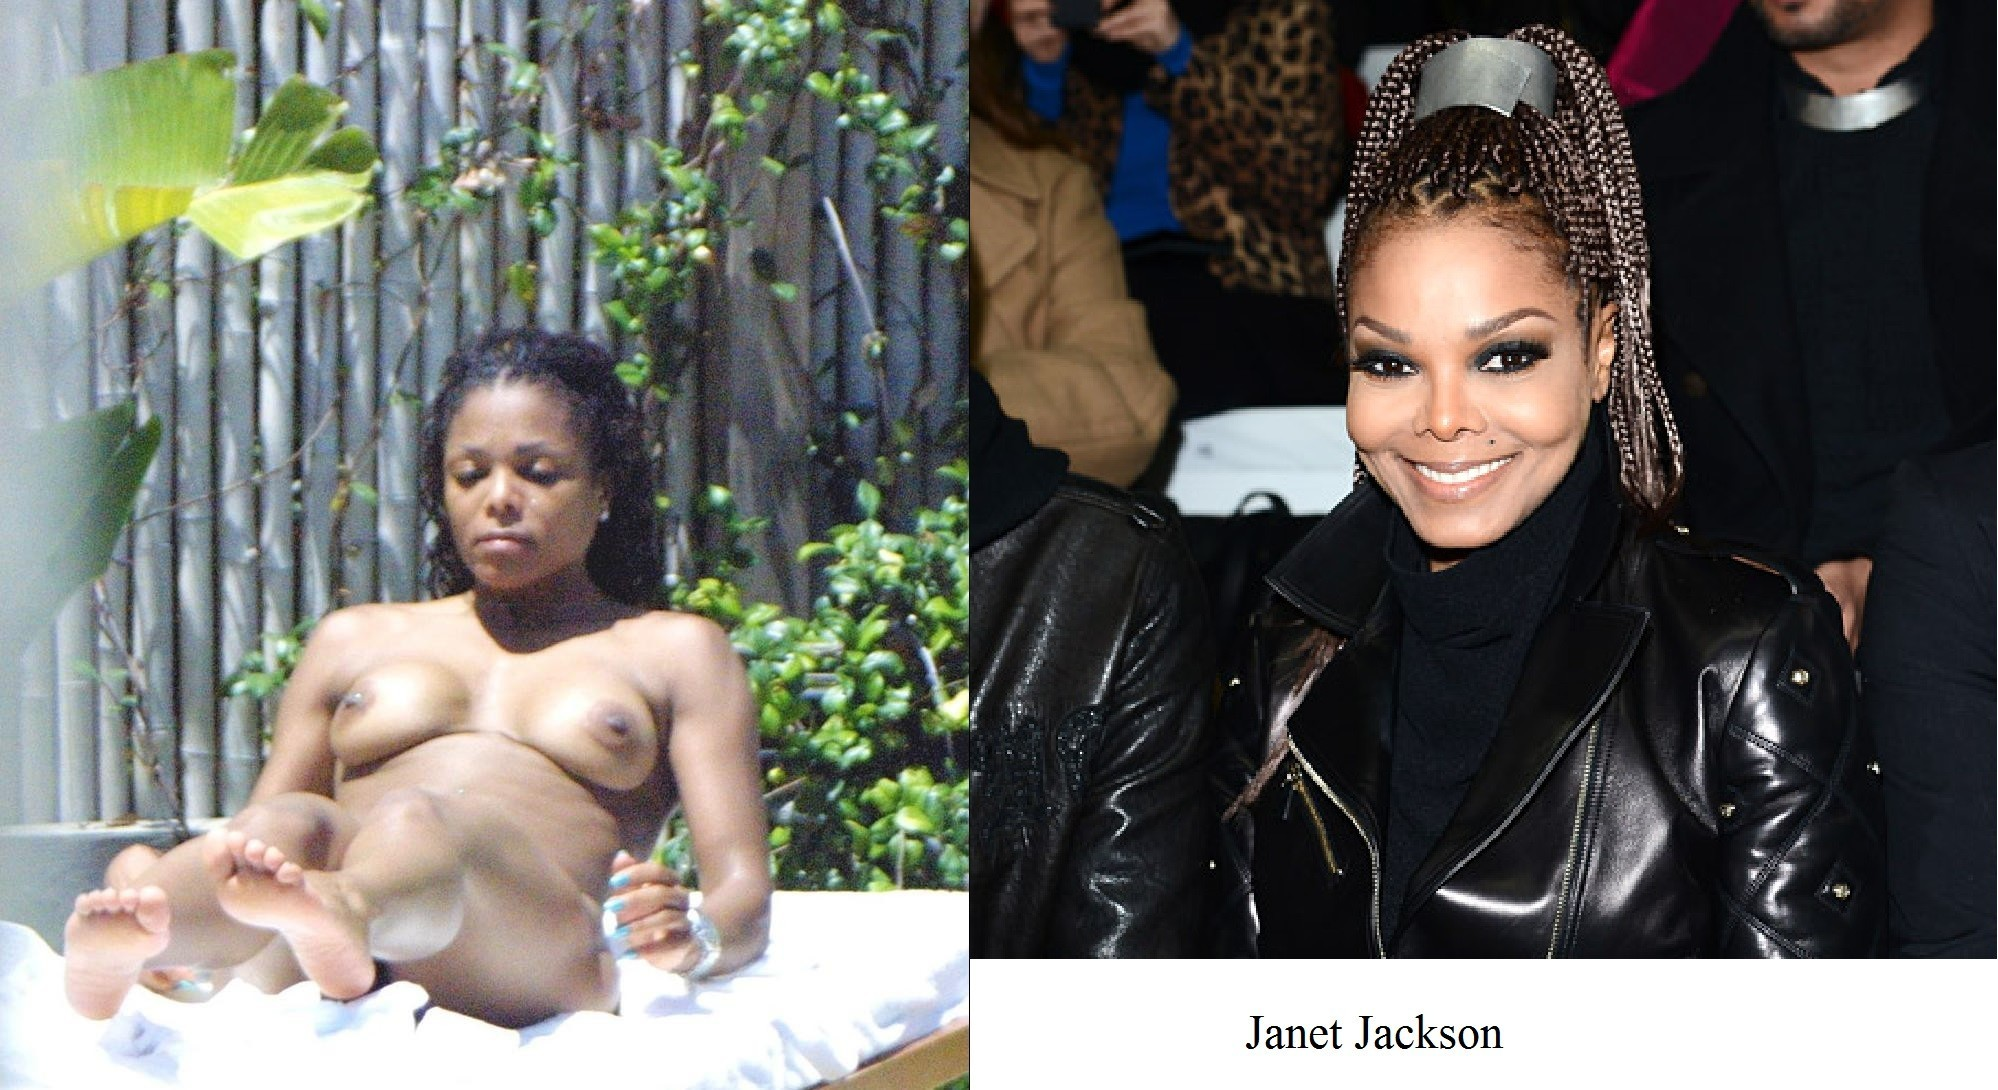 Janet jackson poses for racy photo in bed sheets as she announces new album